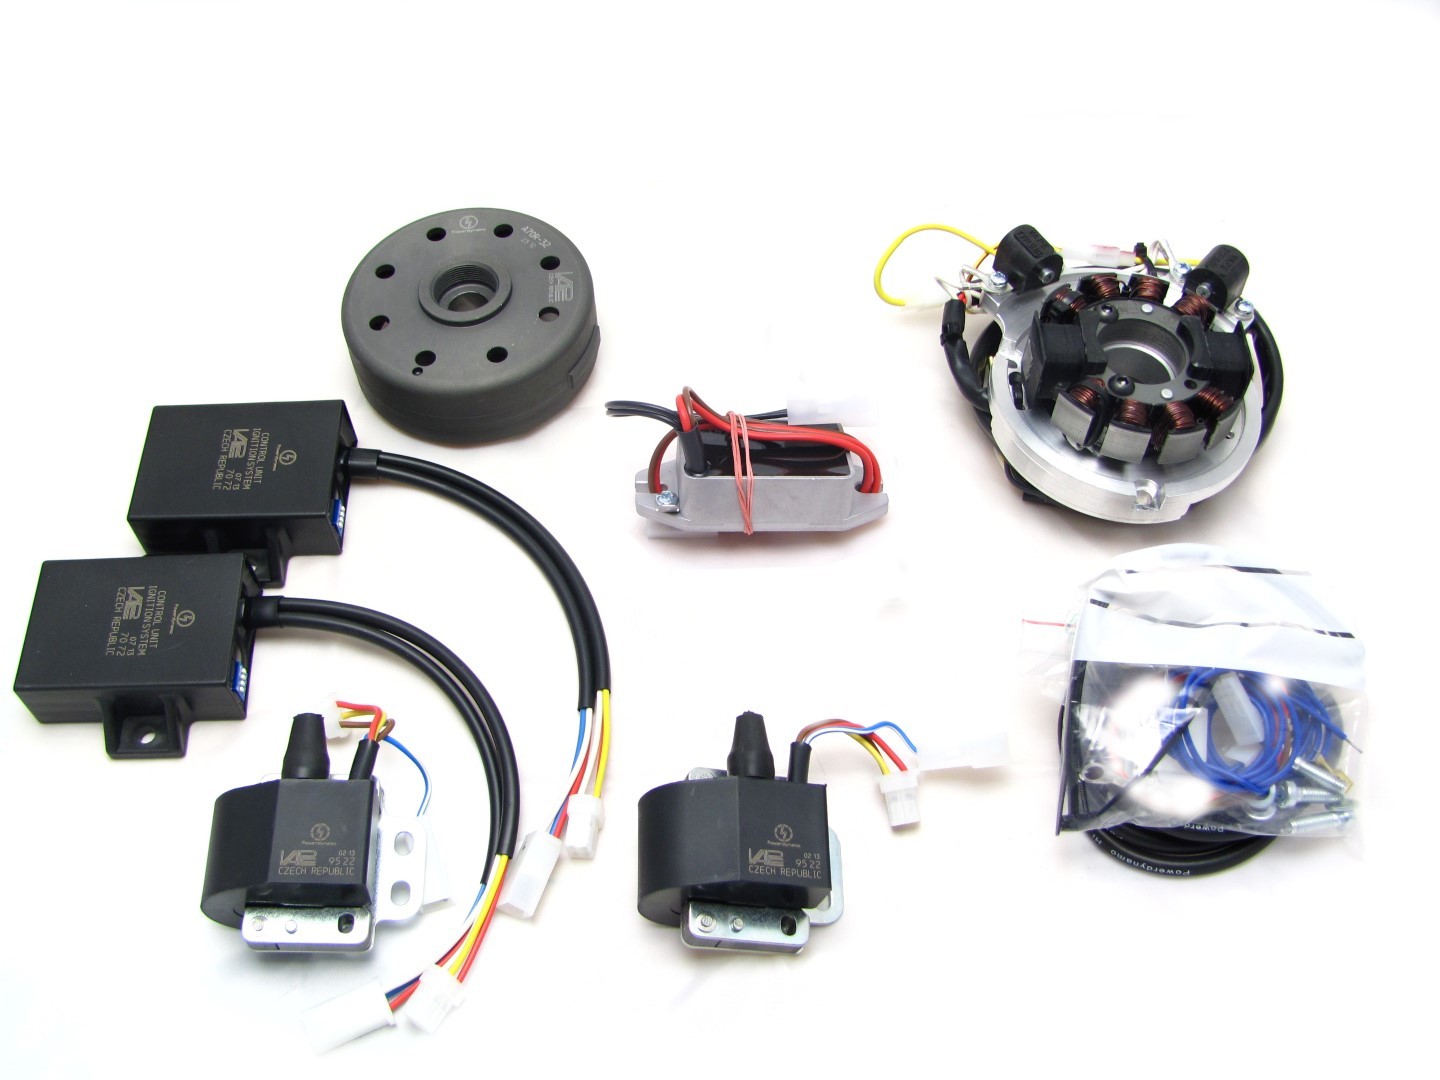 Powerdynamo For Morini 350 V Twin Automotive Lighting System Wiring Diagram Assembly Instructions Parts In The Pack Photo